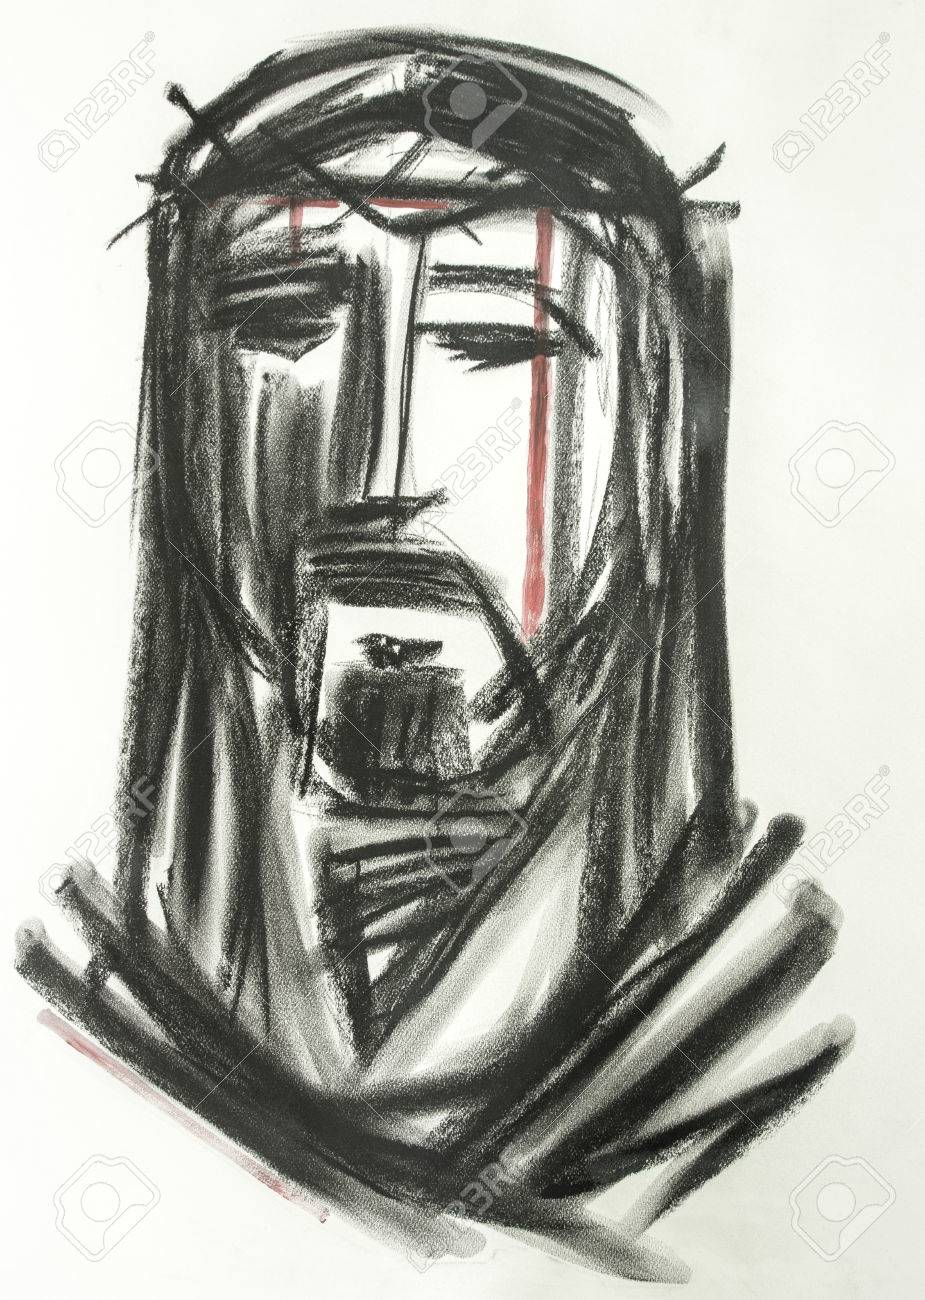 Illustration Dessinee A La Main Ou Dessin De Jesus Christ Face A